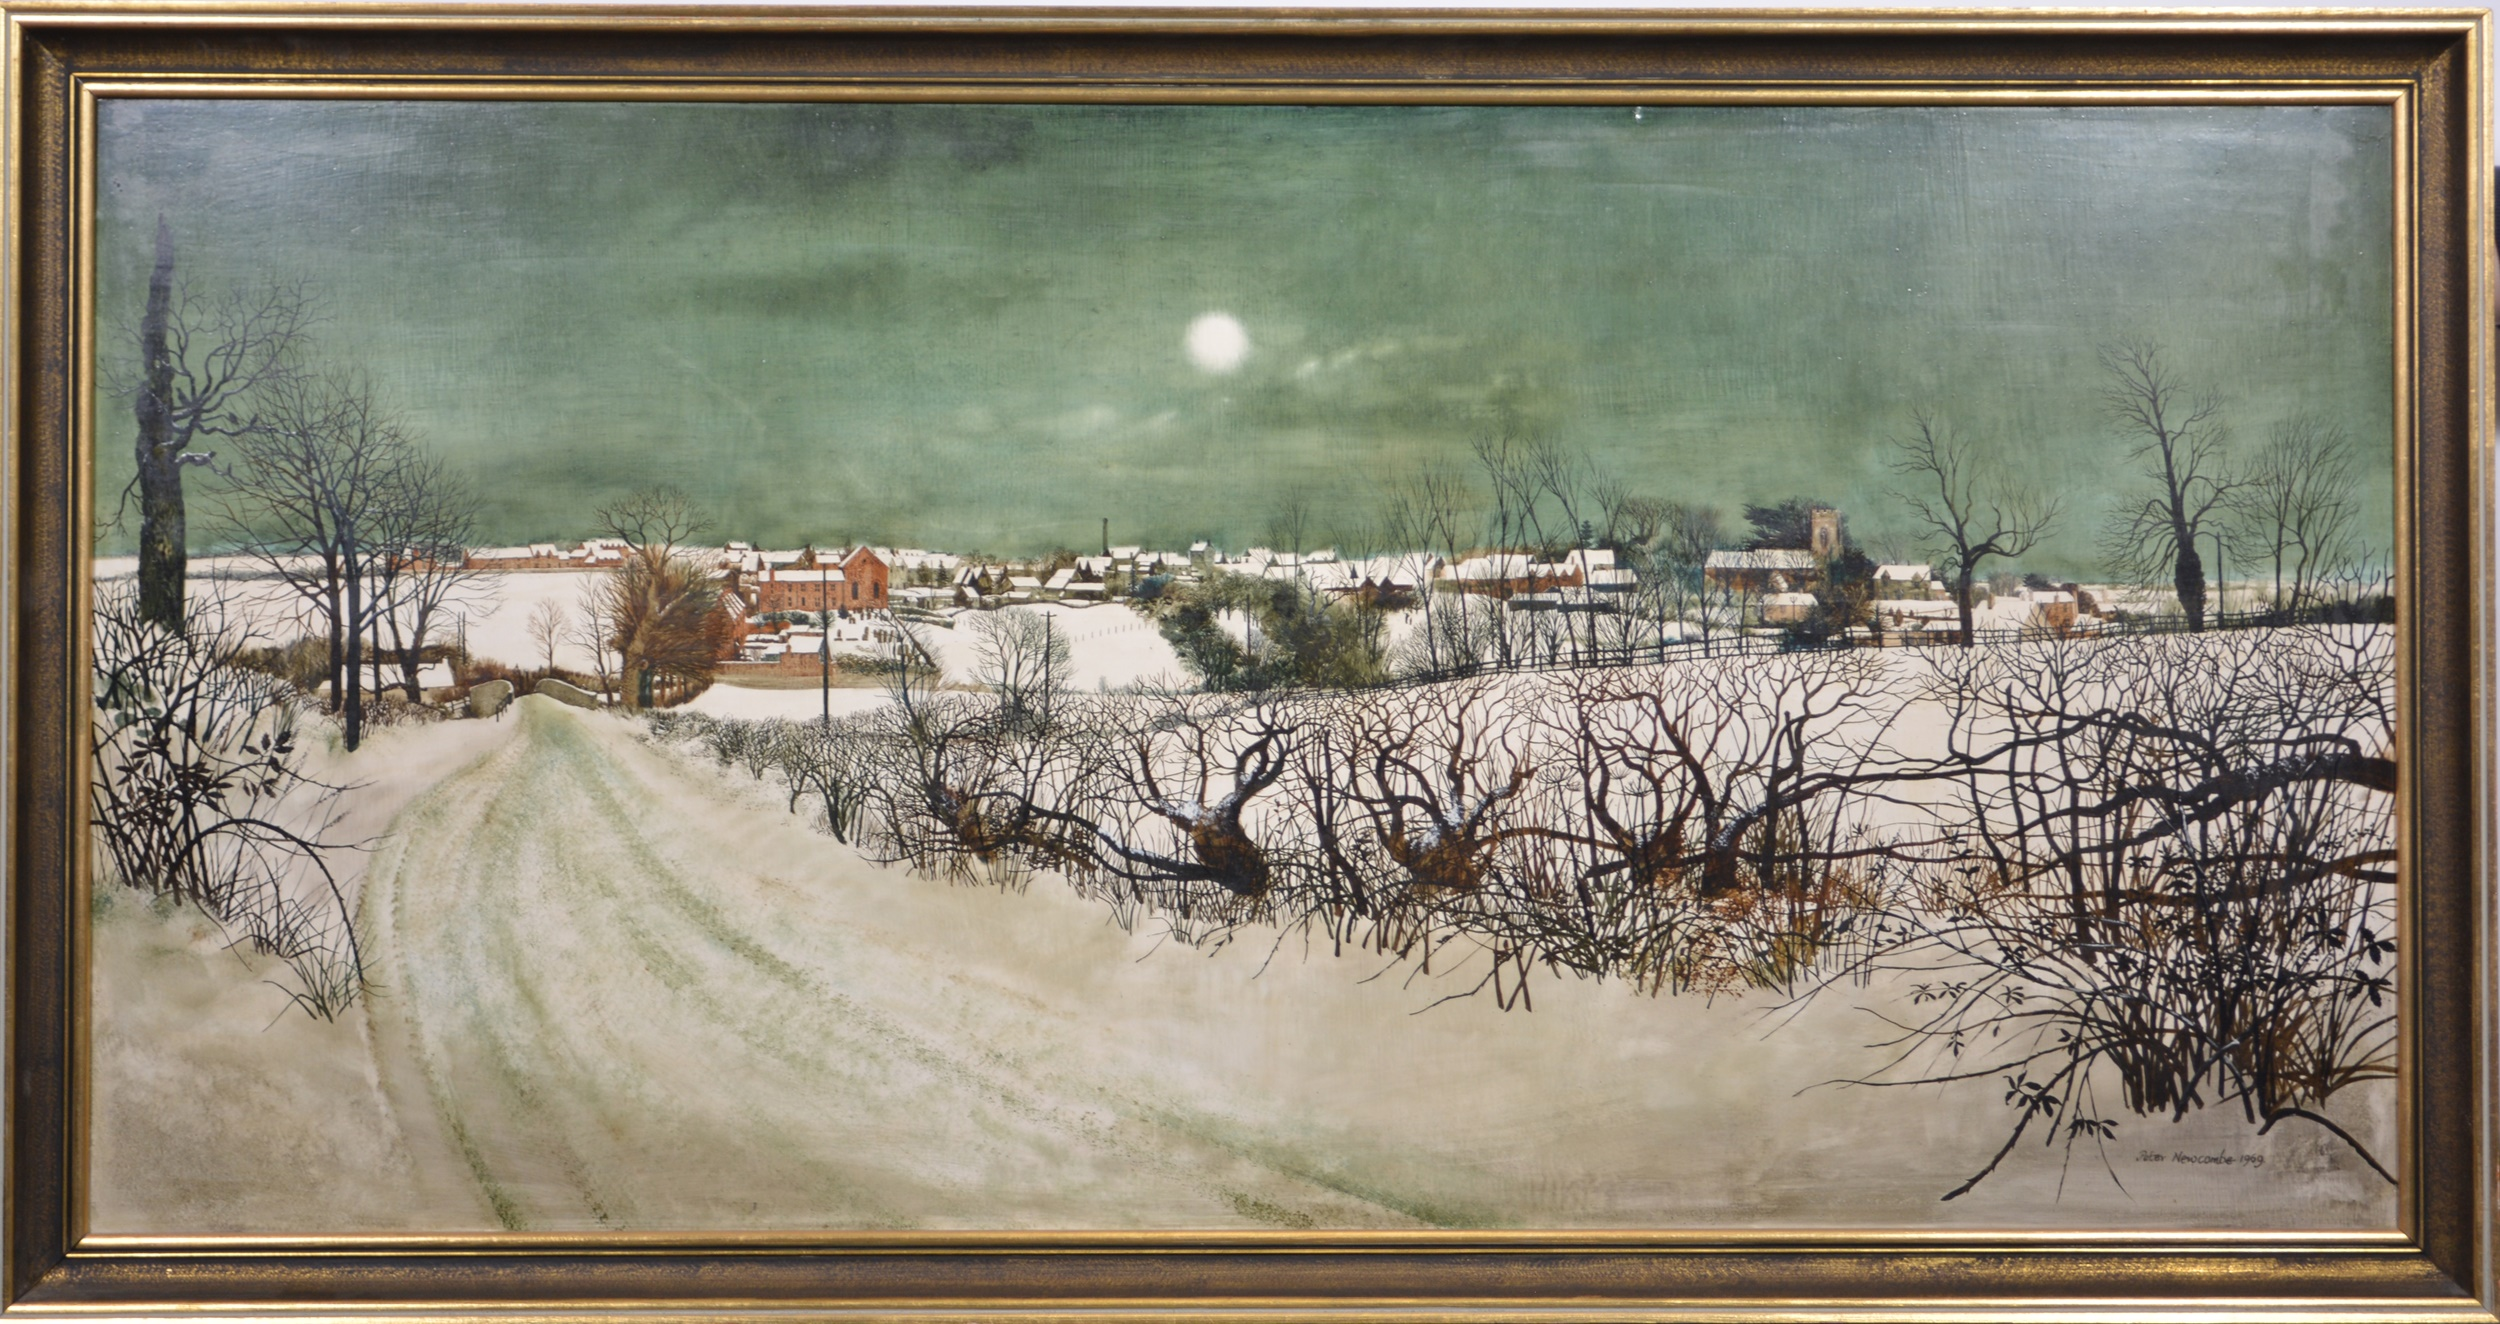 Peter Newcombe, Blisworth winter - Image 2 of 4